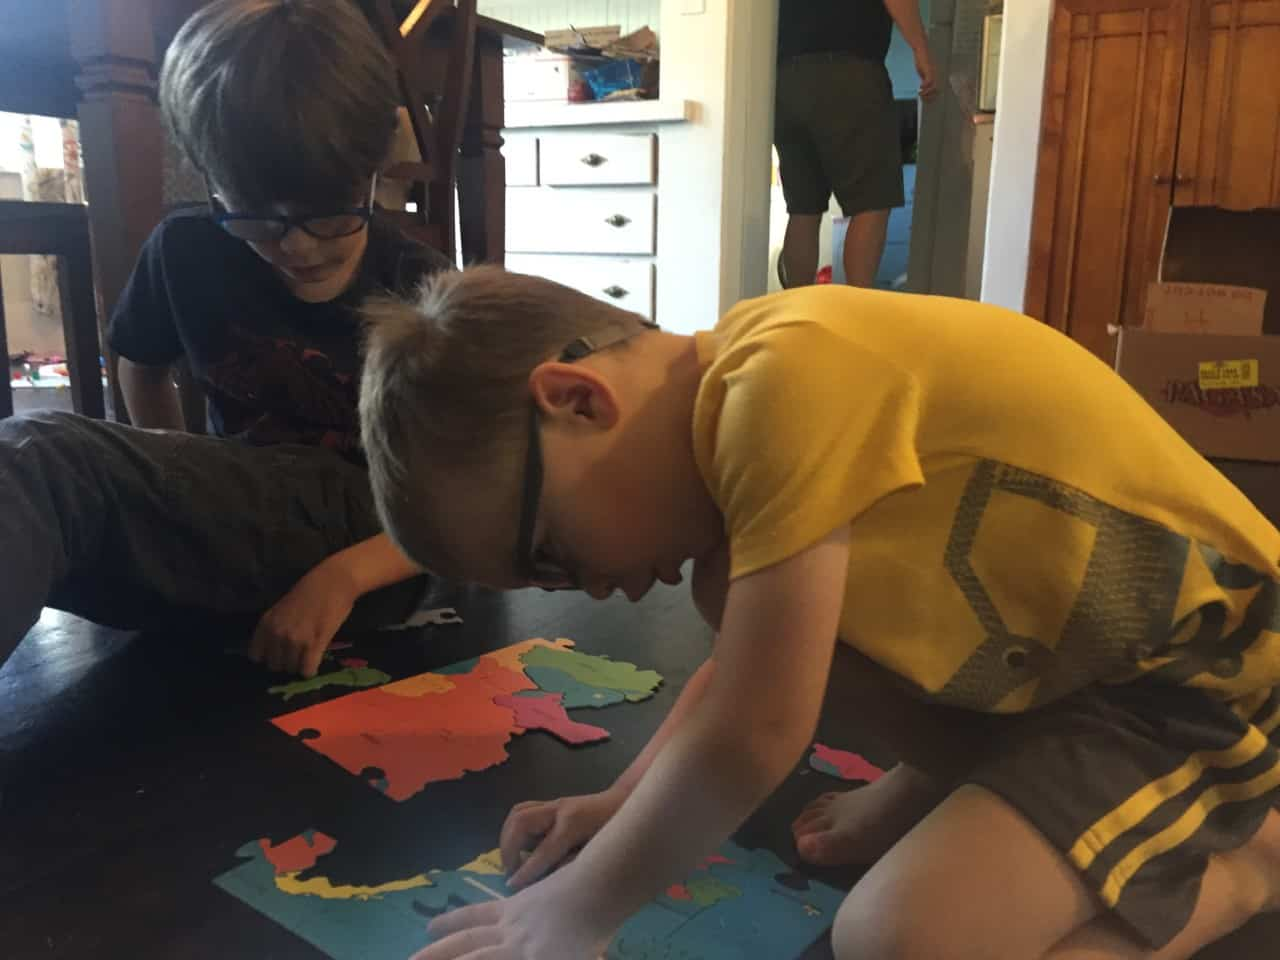 Two boys with glasses do a puzzle on the floor